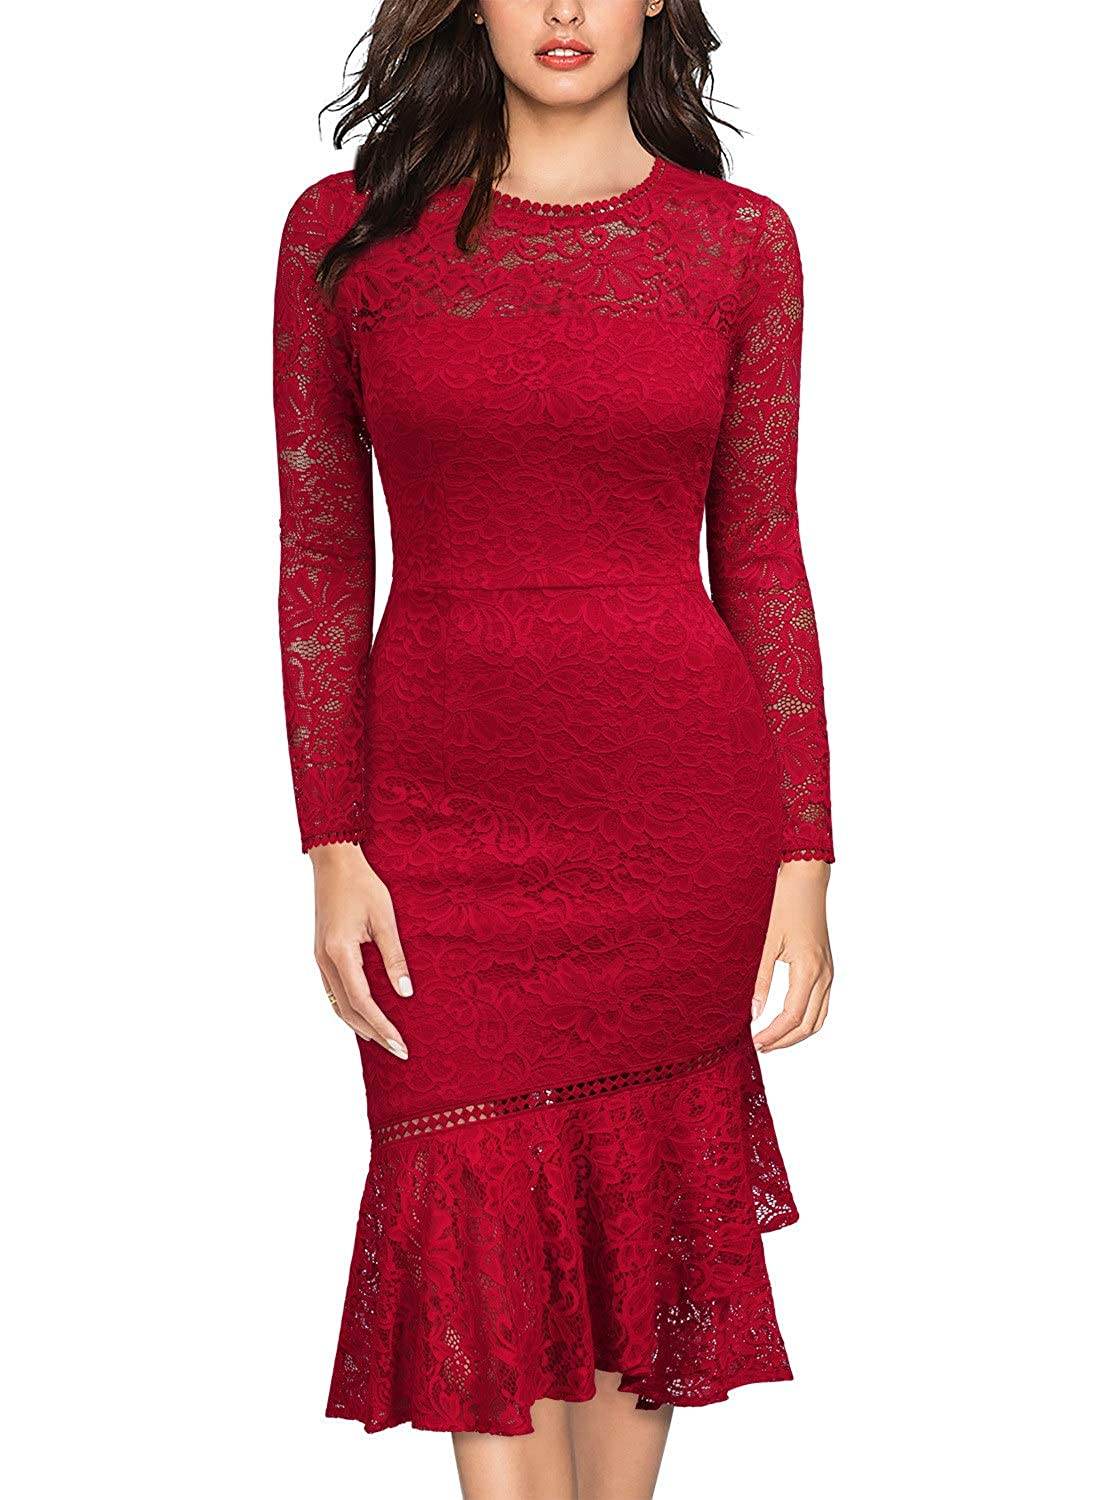 Miusol Women's Vintage Floral Lace Long Sleeves Bridesmaid Midi Dress FQ1868